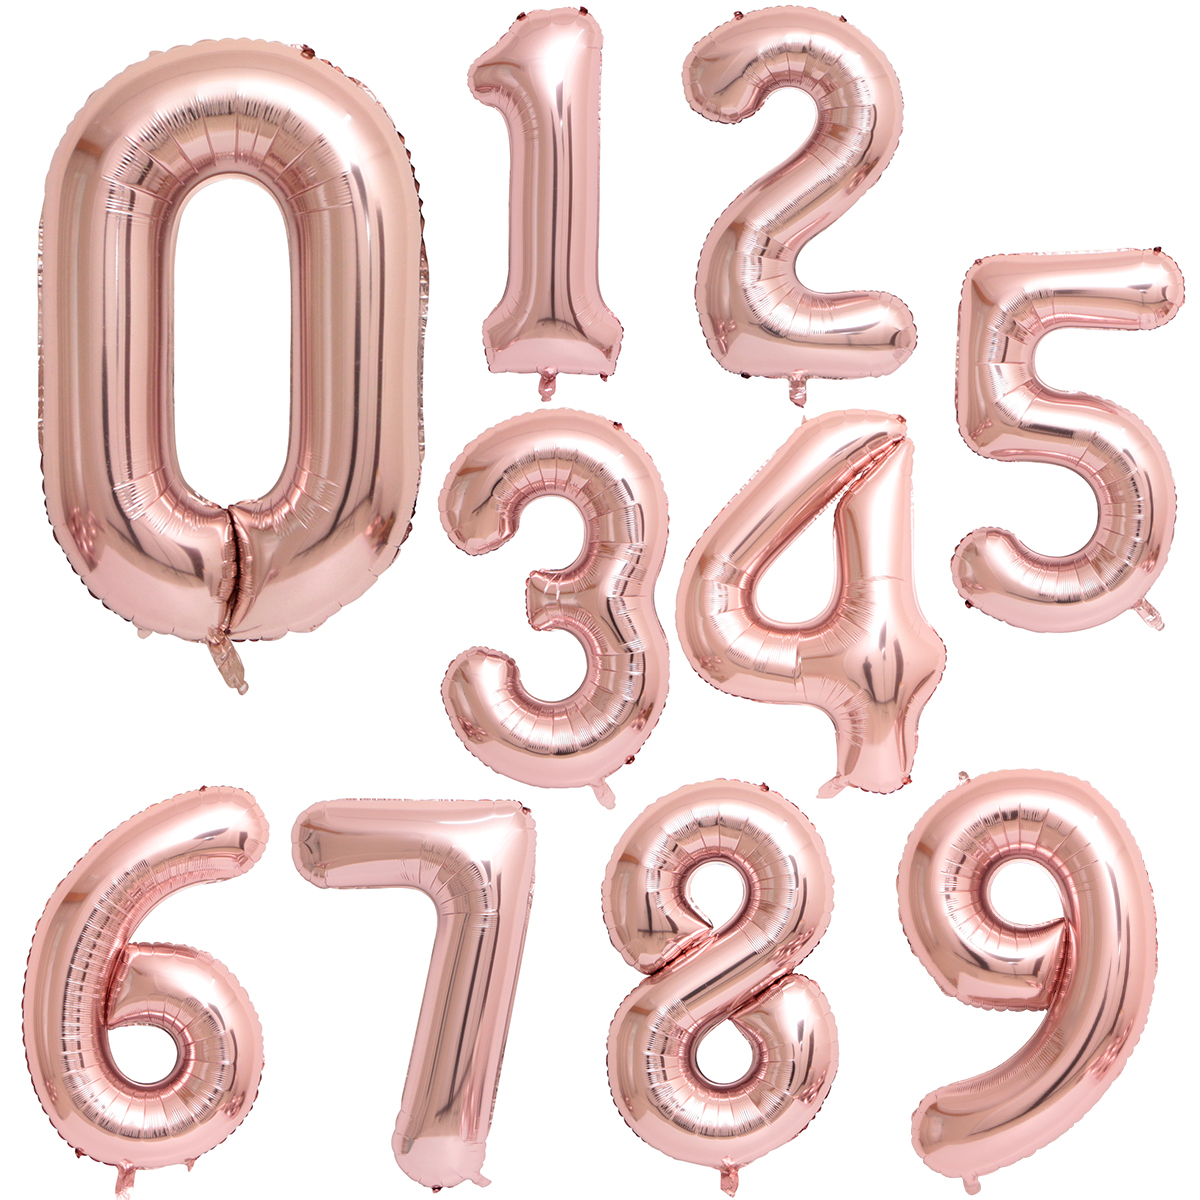 40 And 42 Inch Blue/Pink Big Number Foil Balloons For Birthday Wedding Engagement Party Decor 7